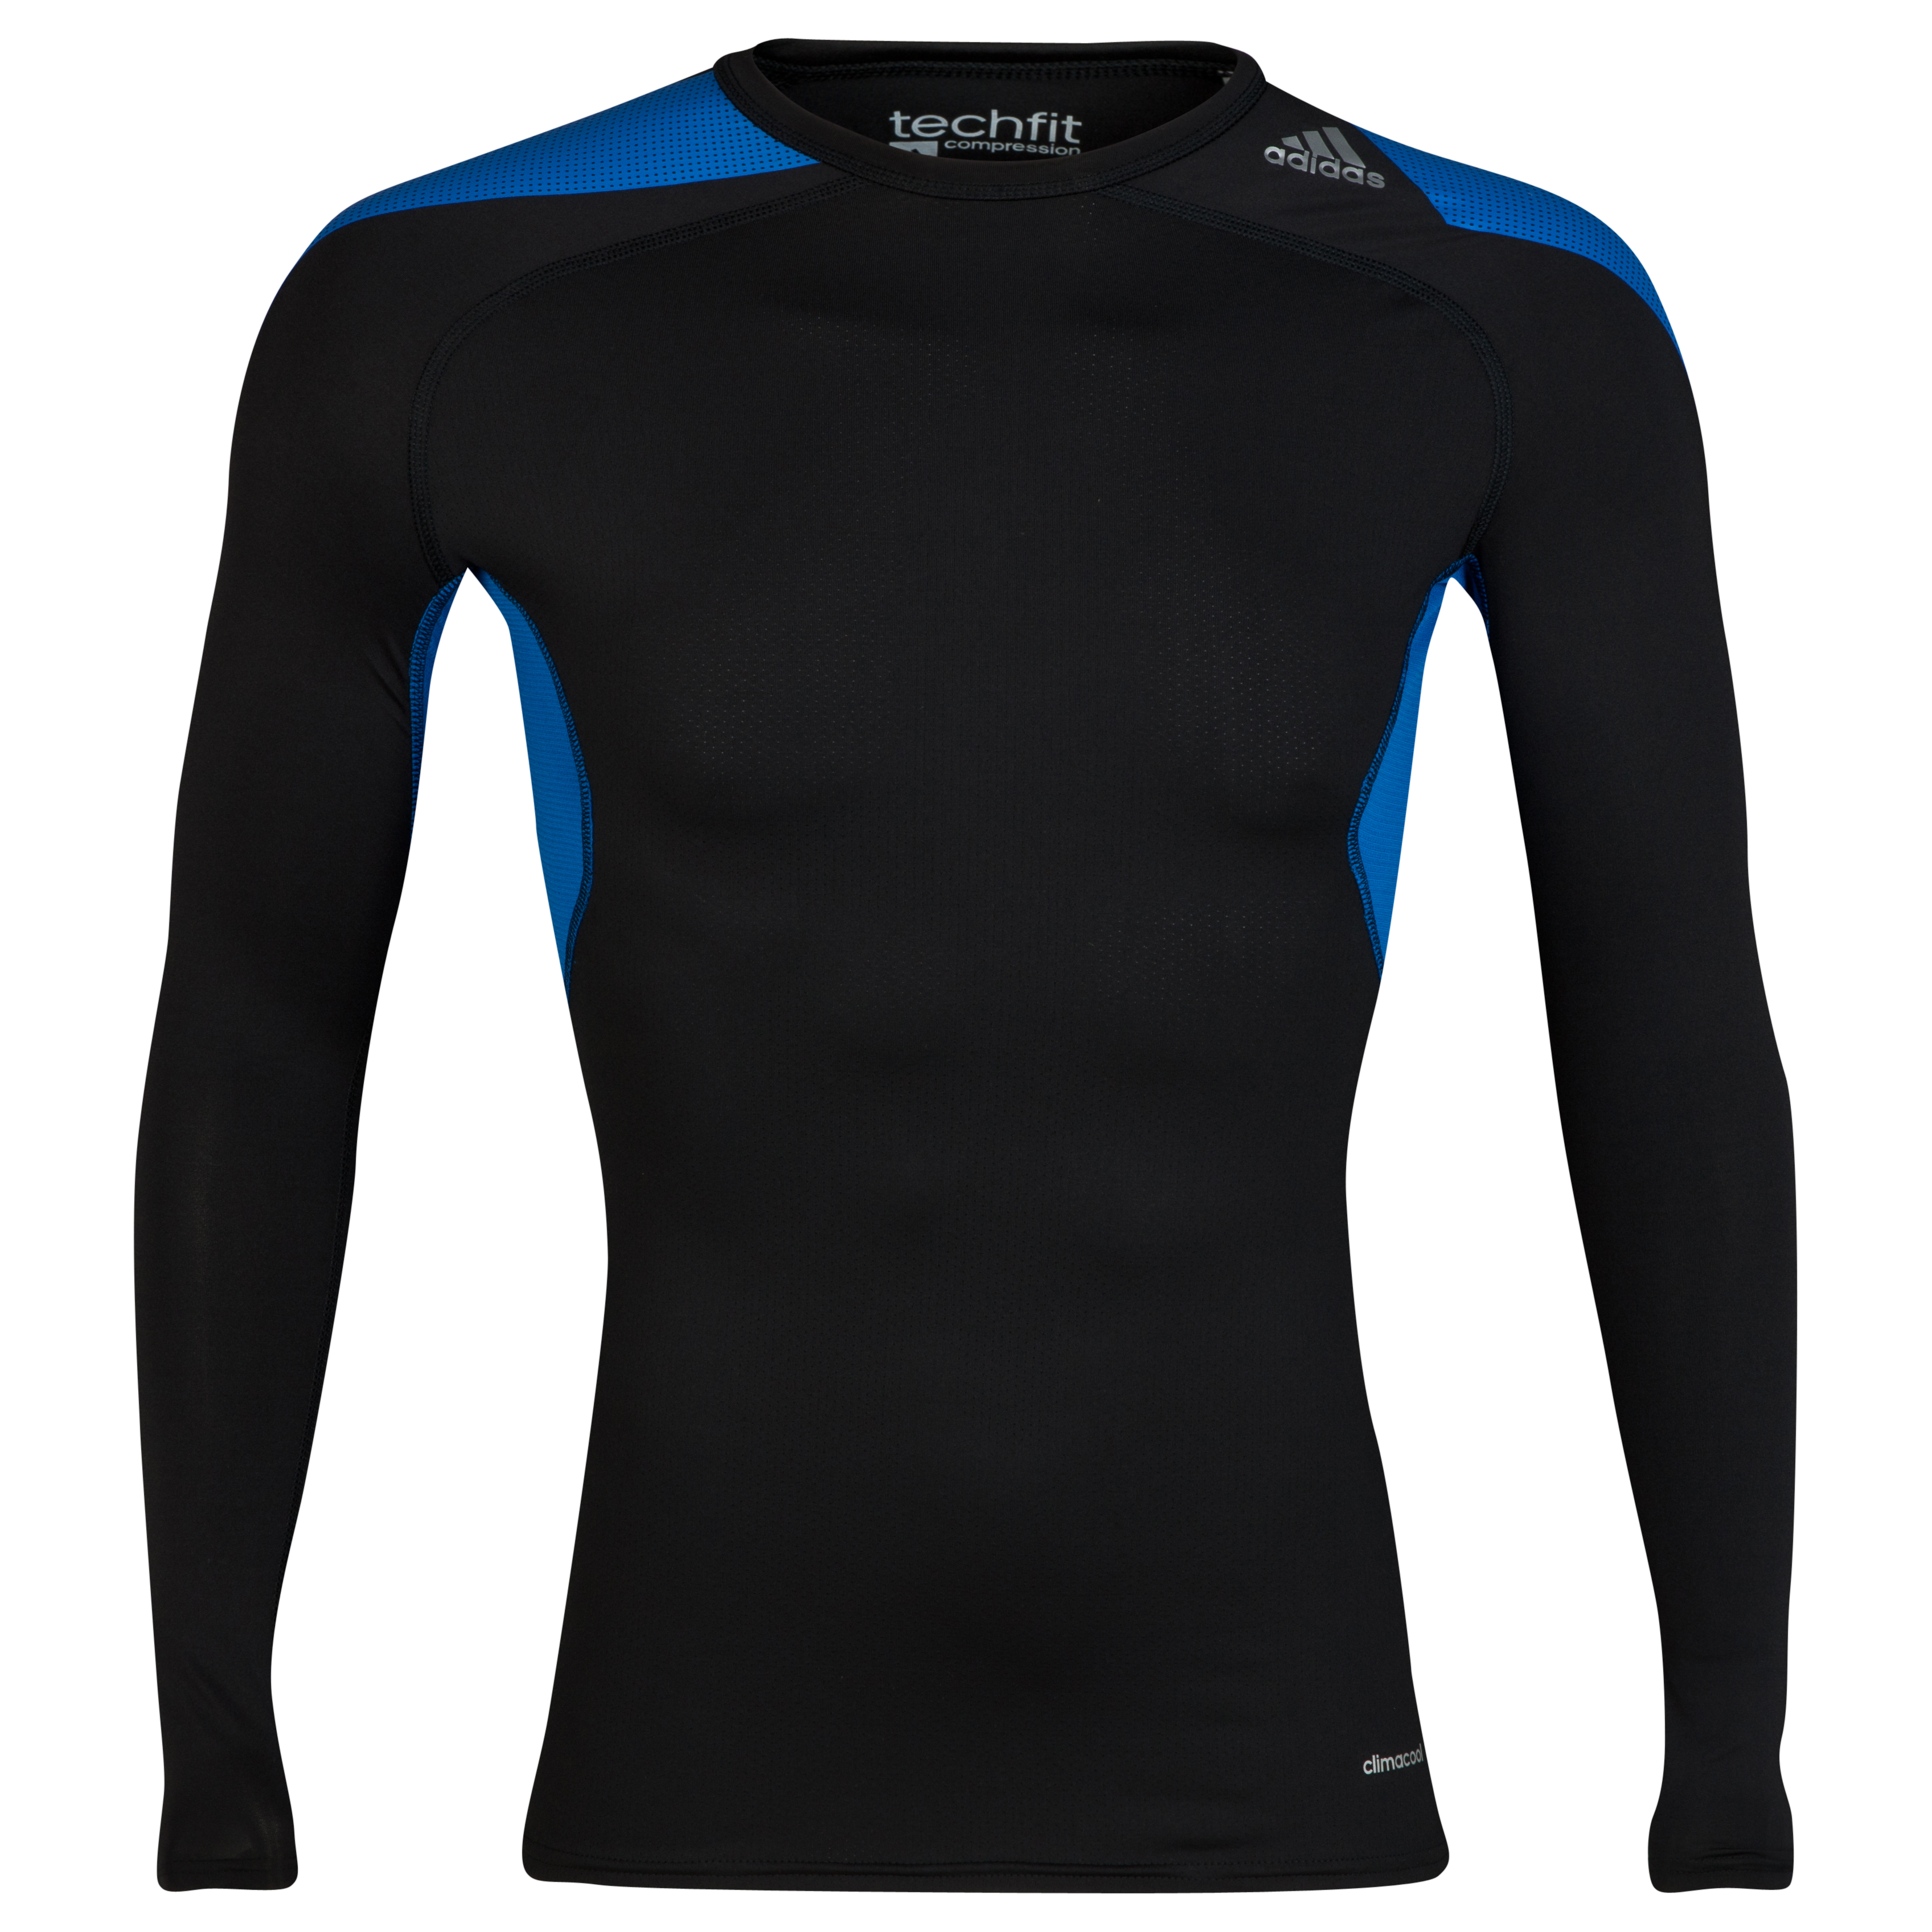 Adidas TechFit Cool Base Layer Top - Long Sleeve Black